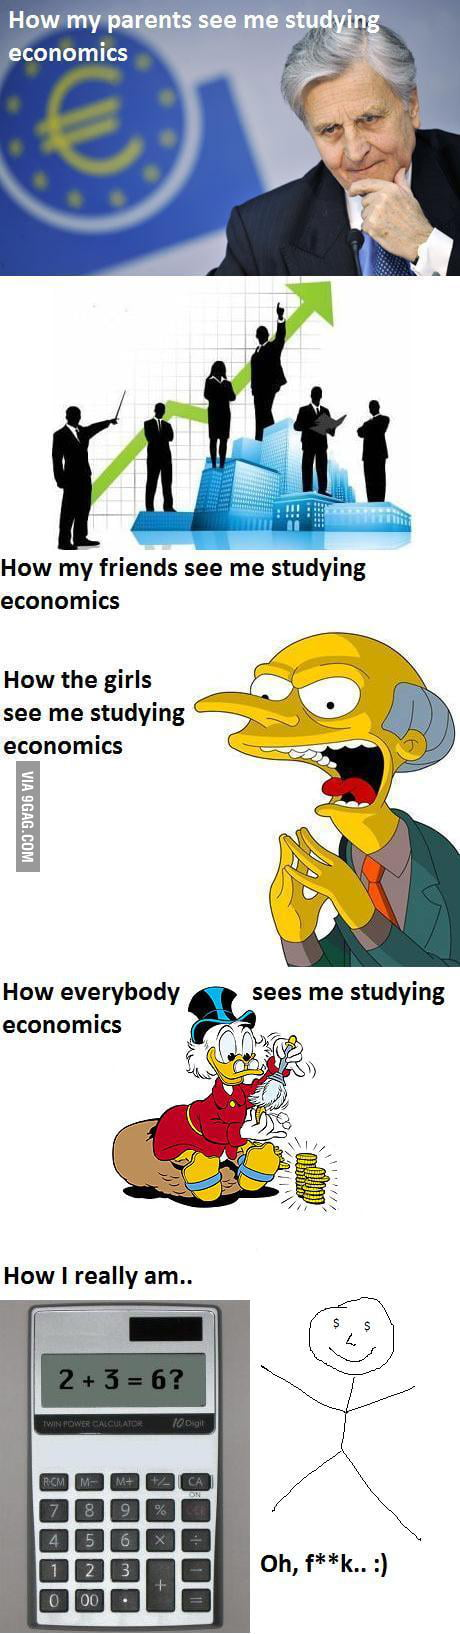 Students of economics 9gag for Architecture students 9gag